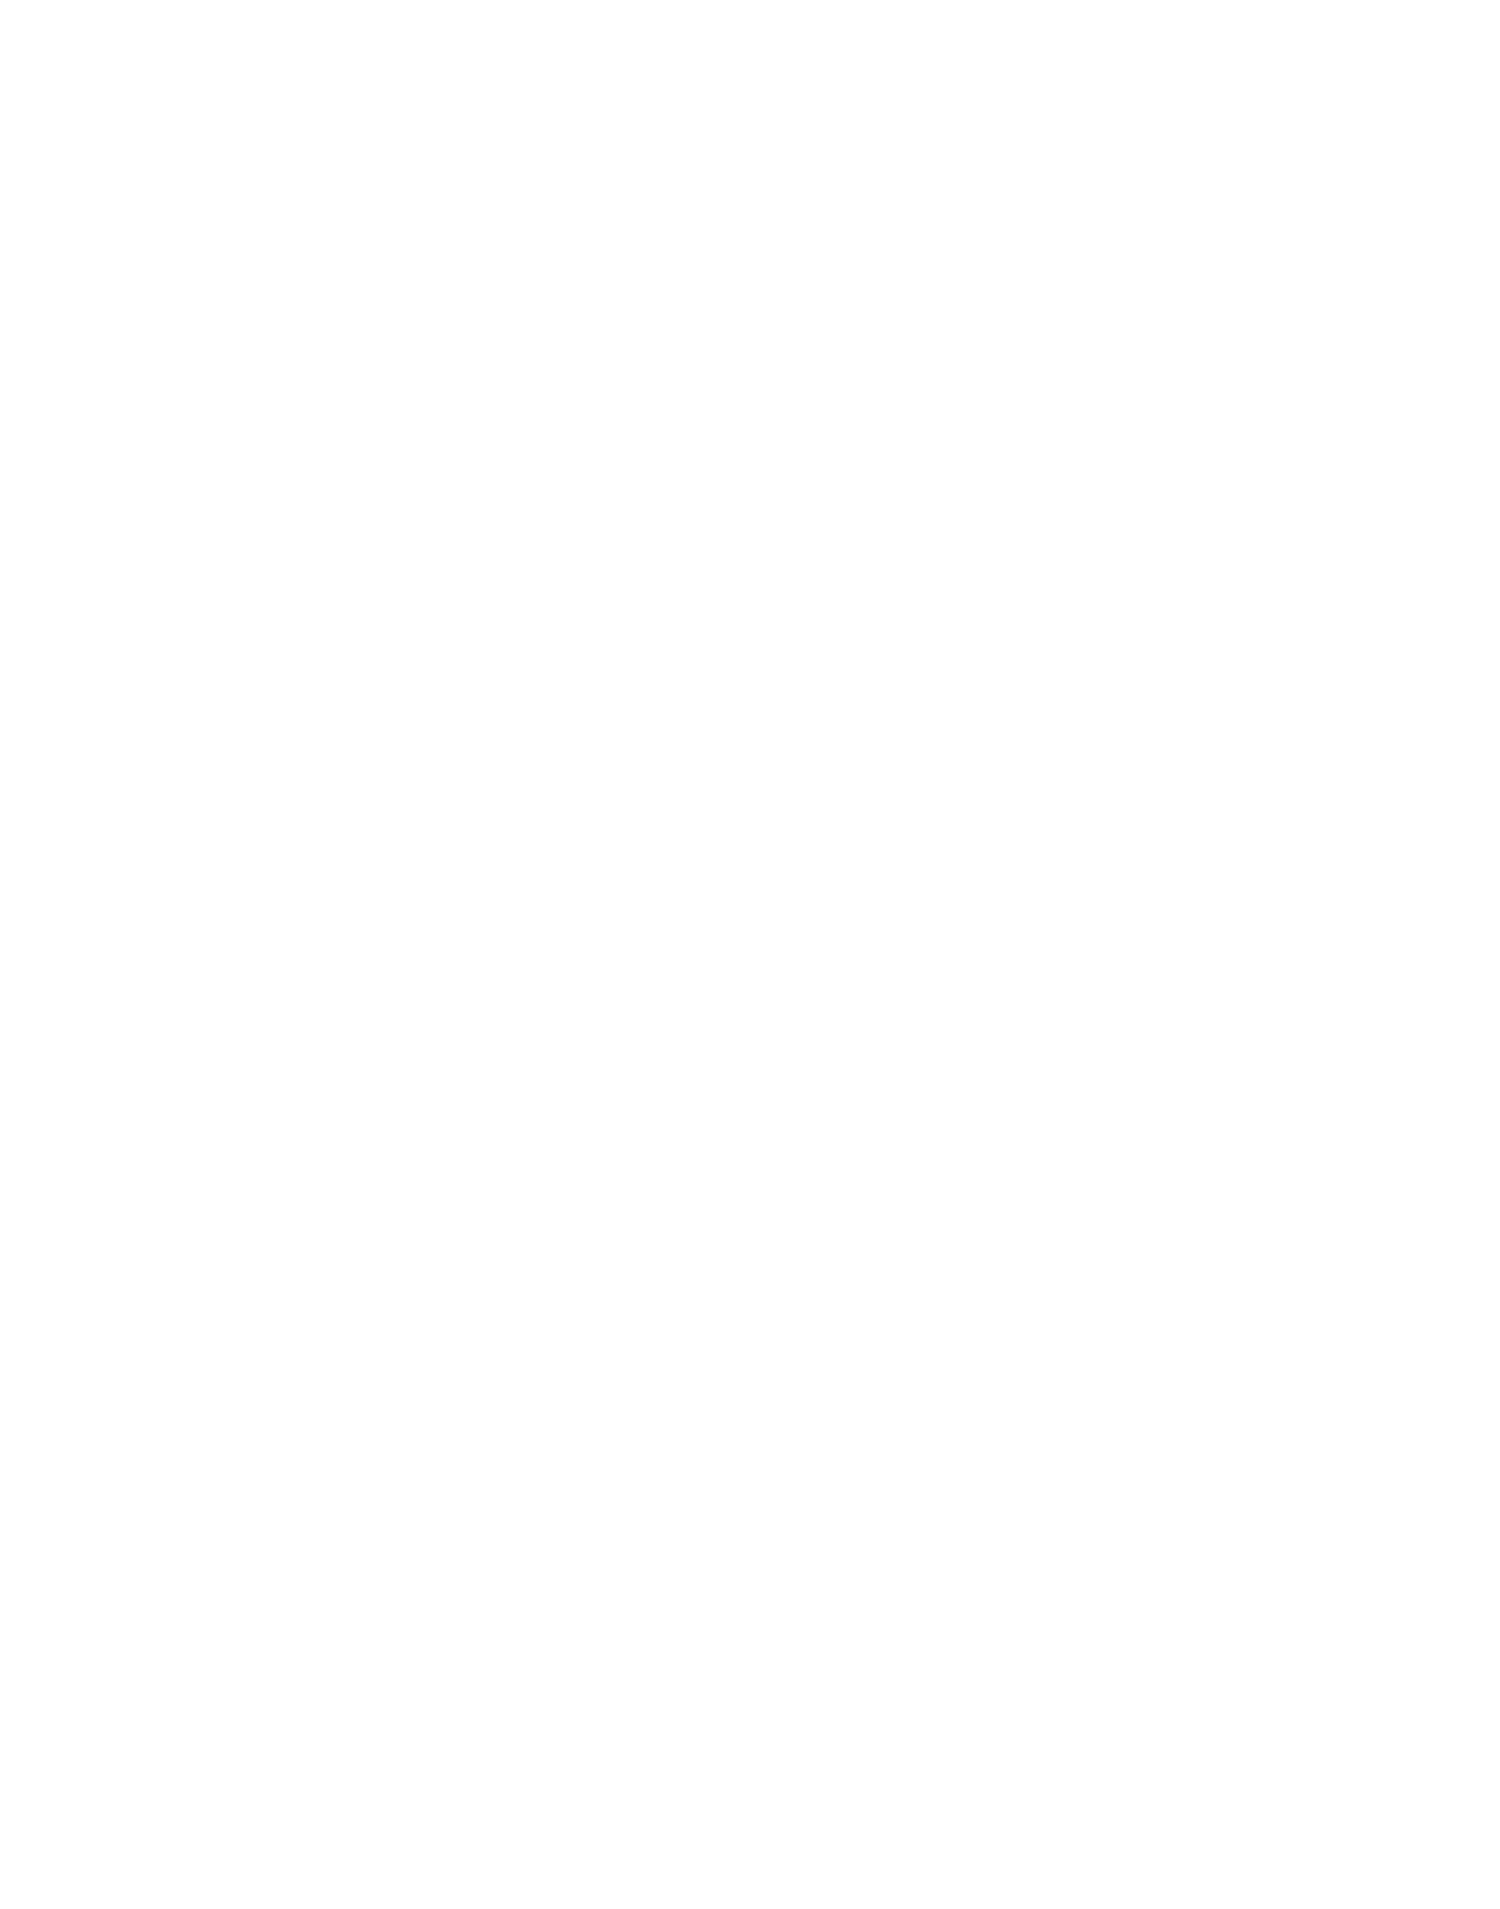 Anchor Pardue Insurance